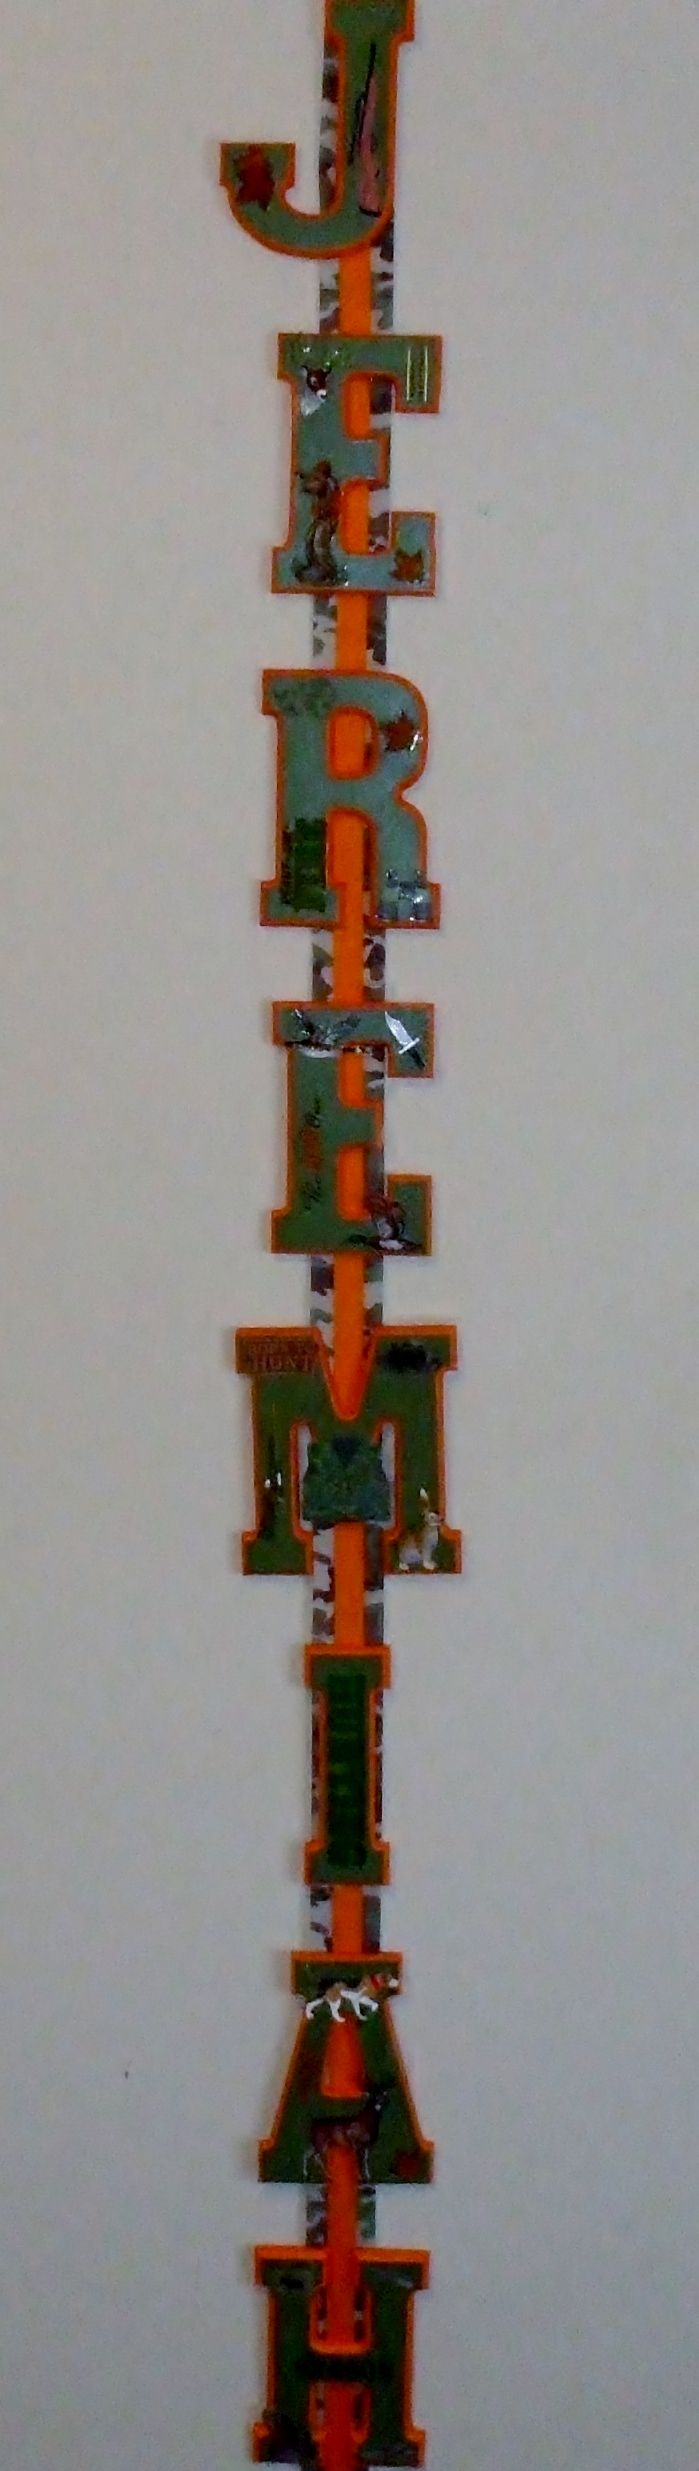 "Jeremiah:  5"" wood letters painted camo green with hunter themed accents hung on grosgrain ribbon"